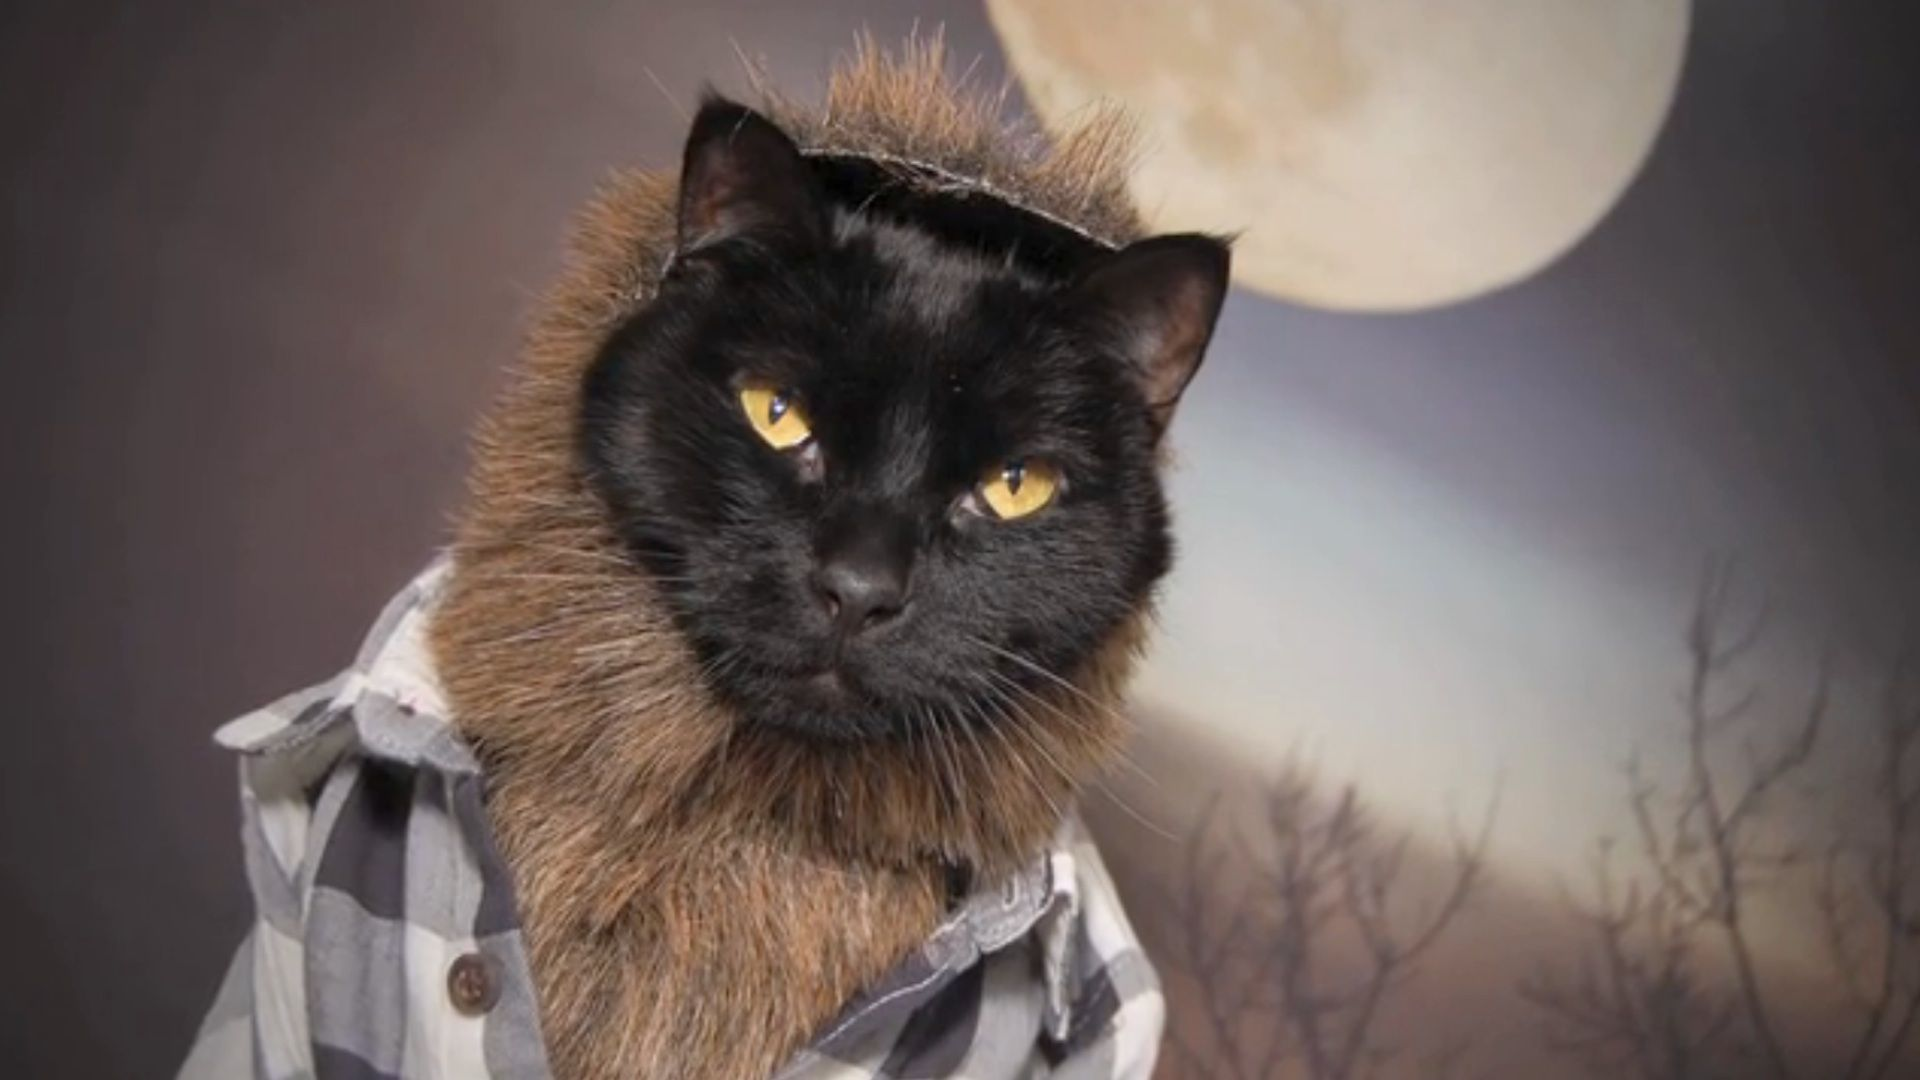 Super Amazing 100% Awesome Cat Calendar Exists — Seriously